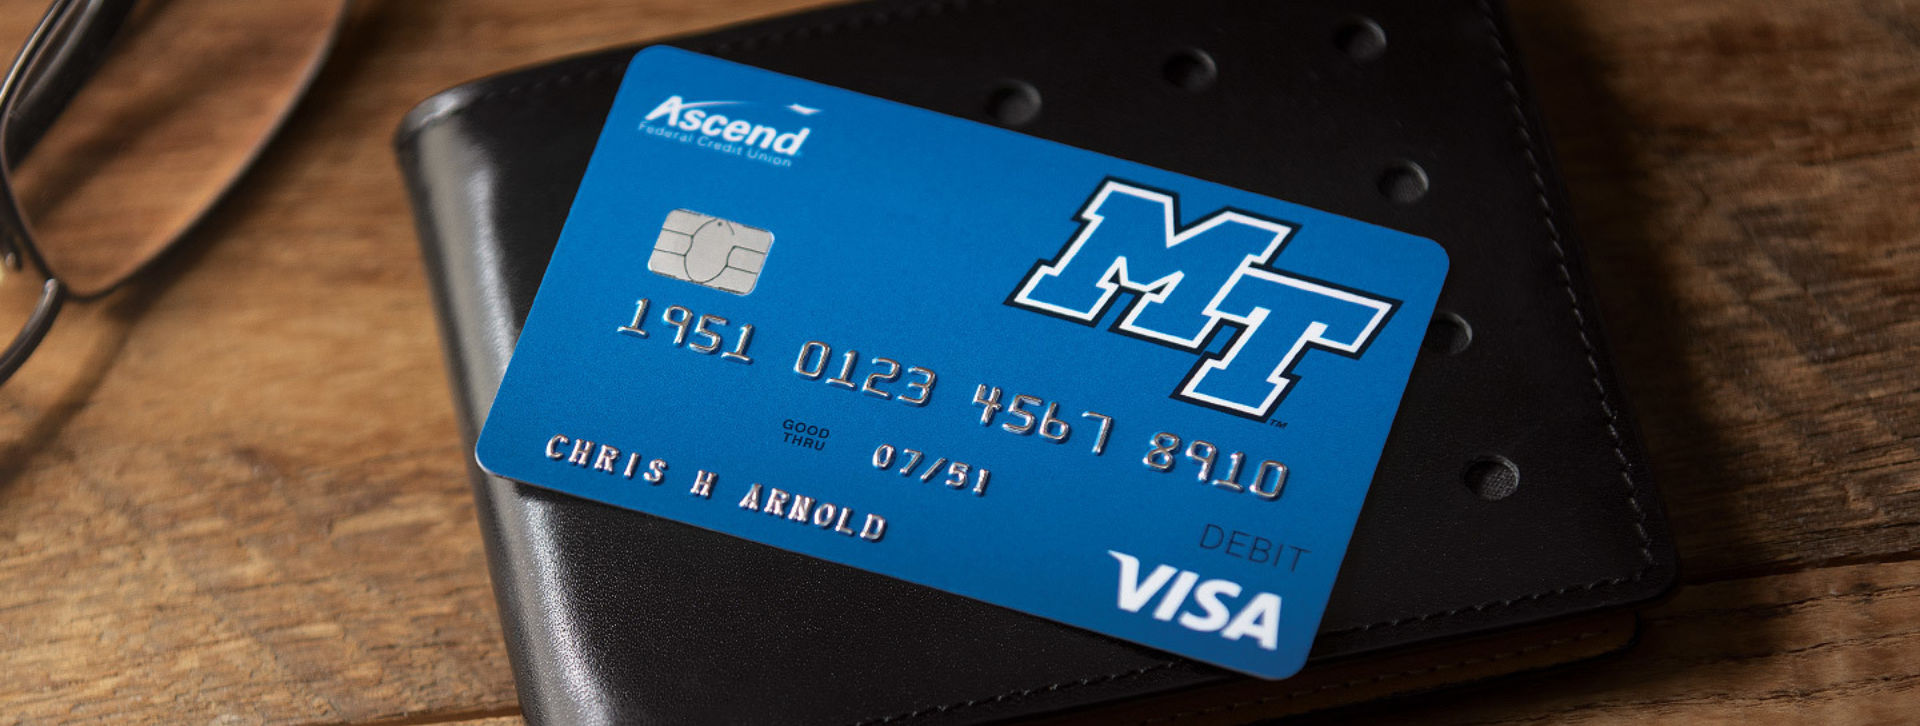 Blue Ascend Debit Card